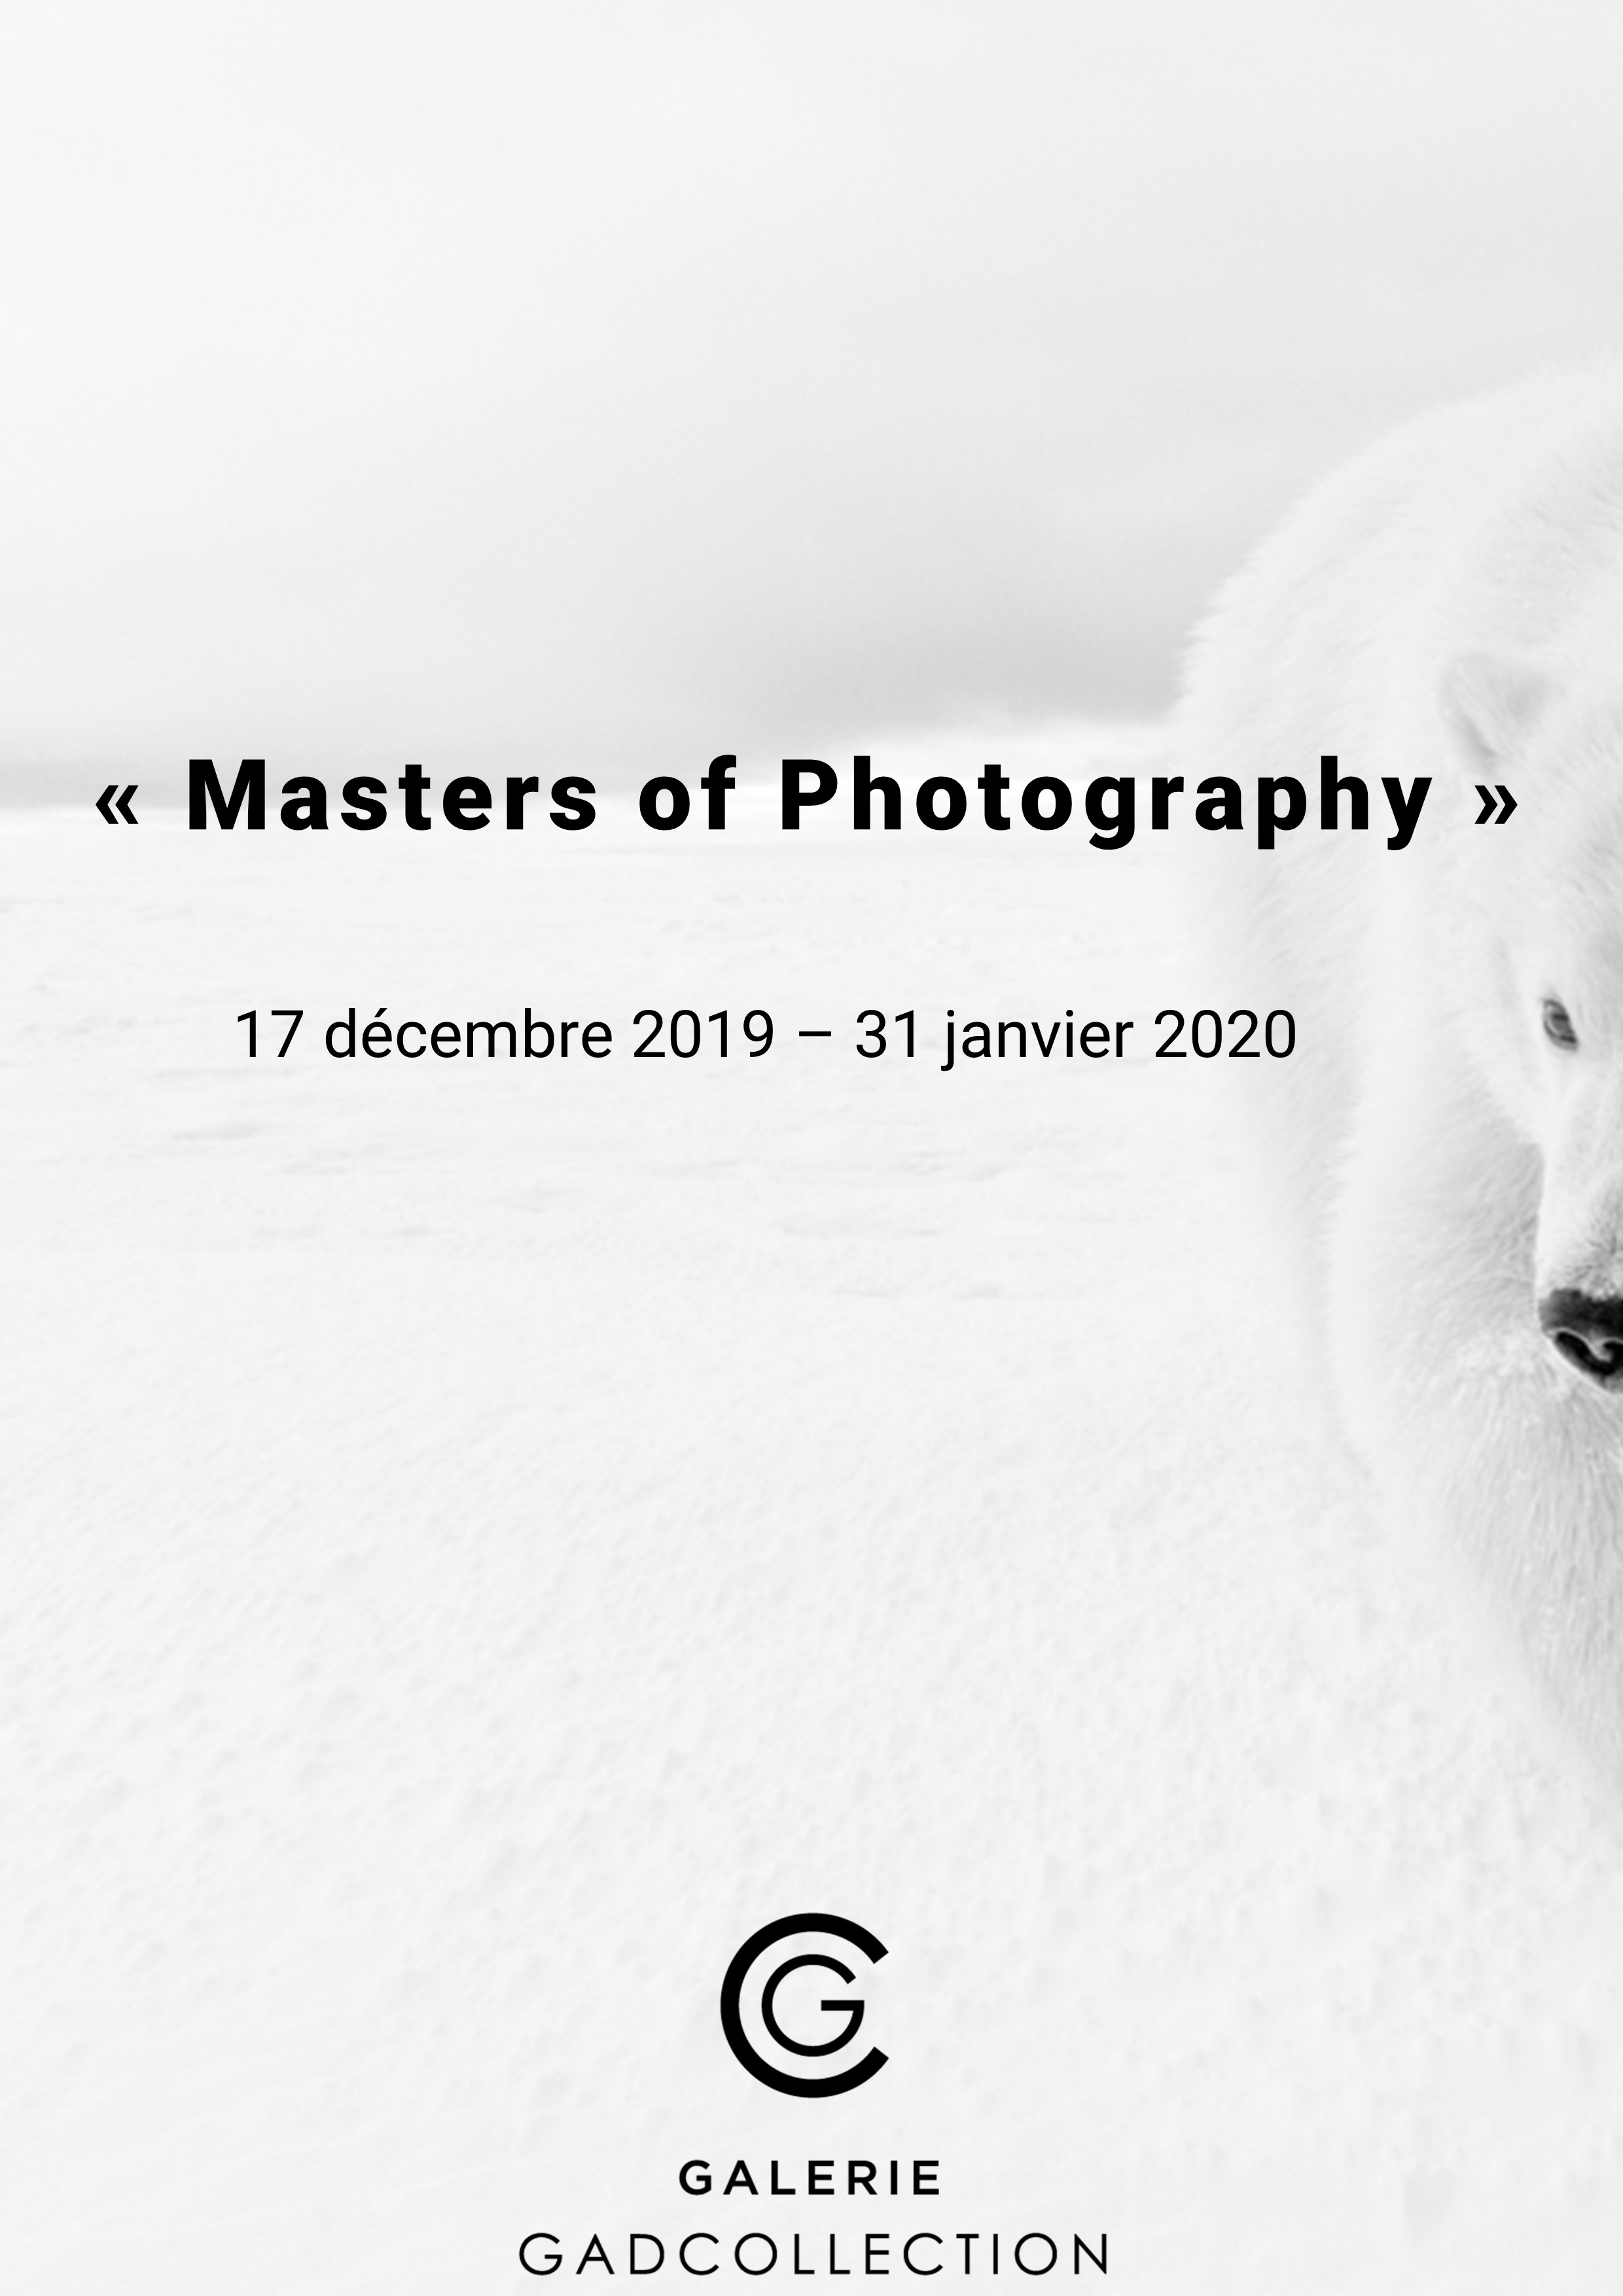 Galerie GADCOLLECTION,Masters of Photography